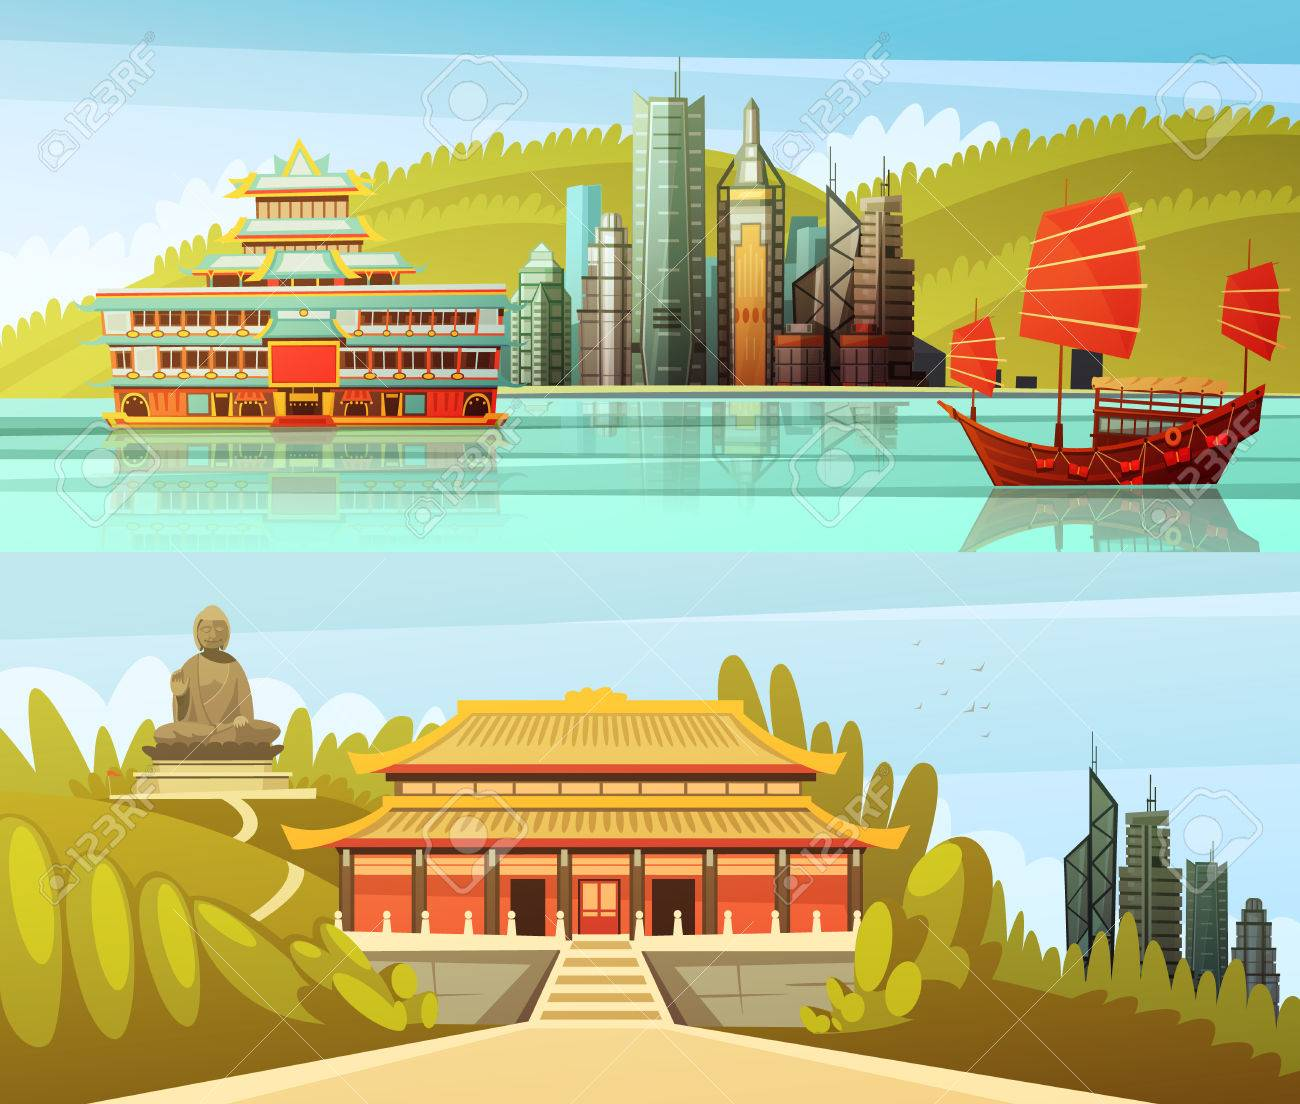 Hong kong horizontal banners with colorful pictures of modern skyscrapers and traditional architectural and cultural elements flat vector illustration Stock Vector - 61577042